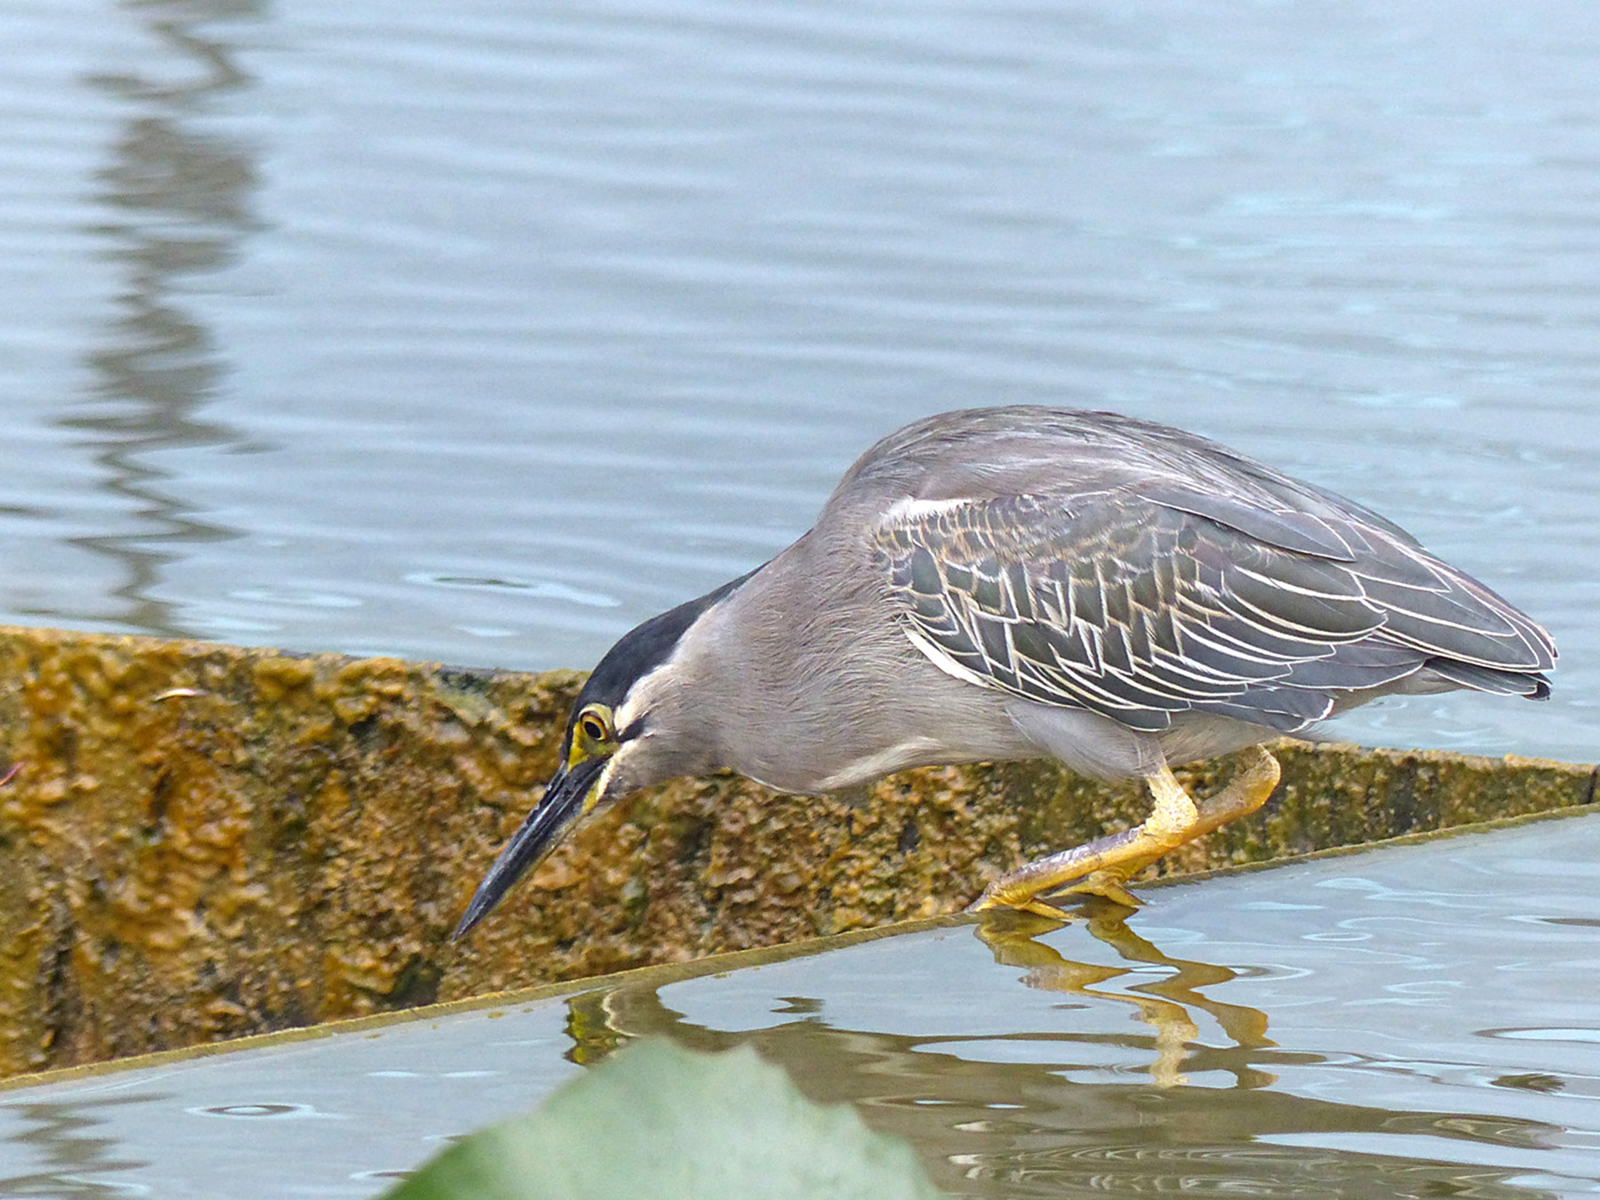 07_Asian heron_Austin Thorp